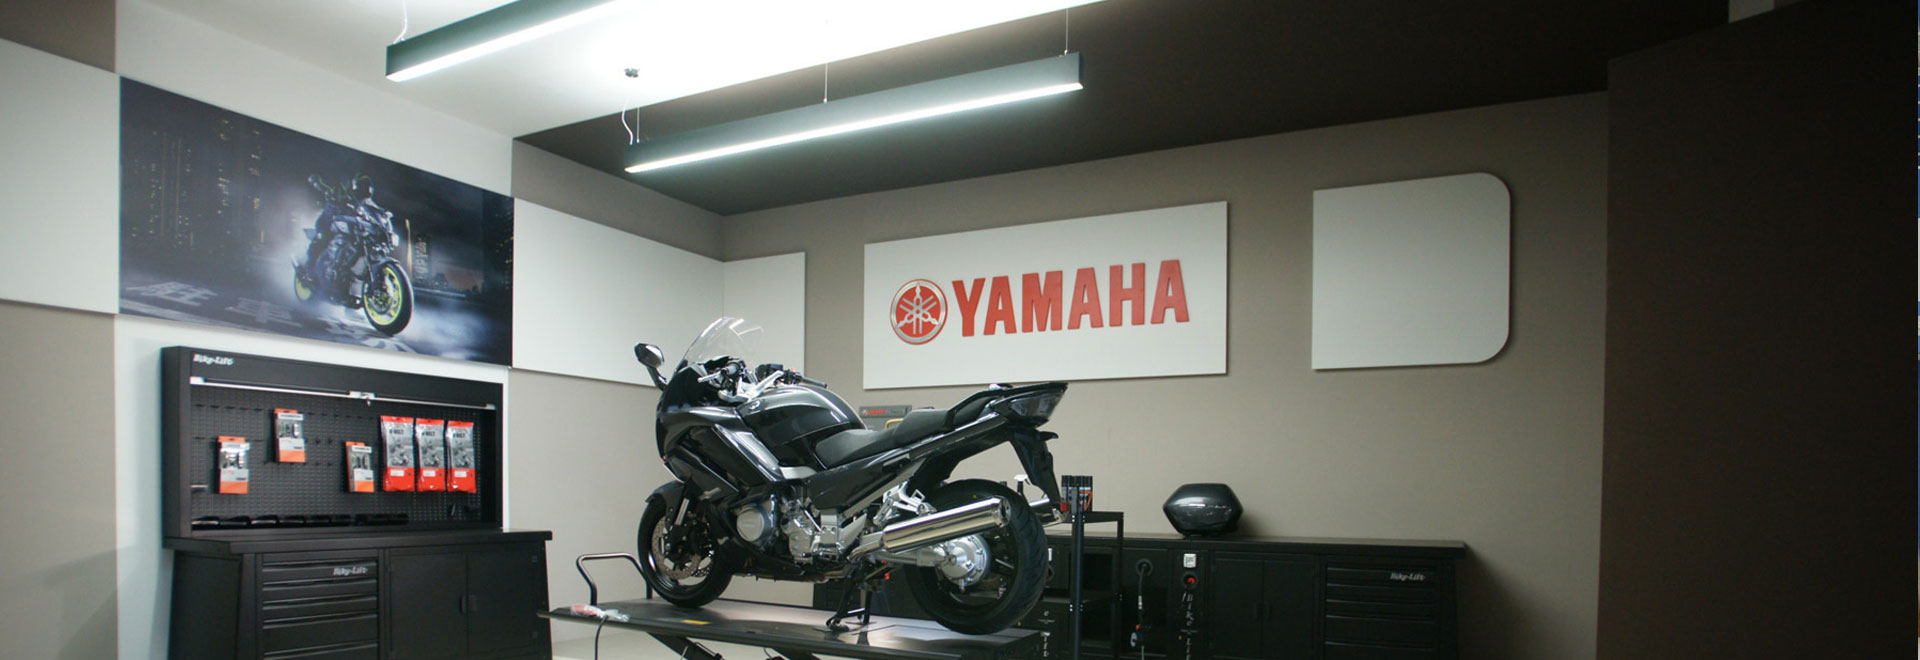 Shinrai Yamaha-Indoor Decorators Works